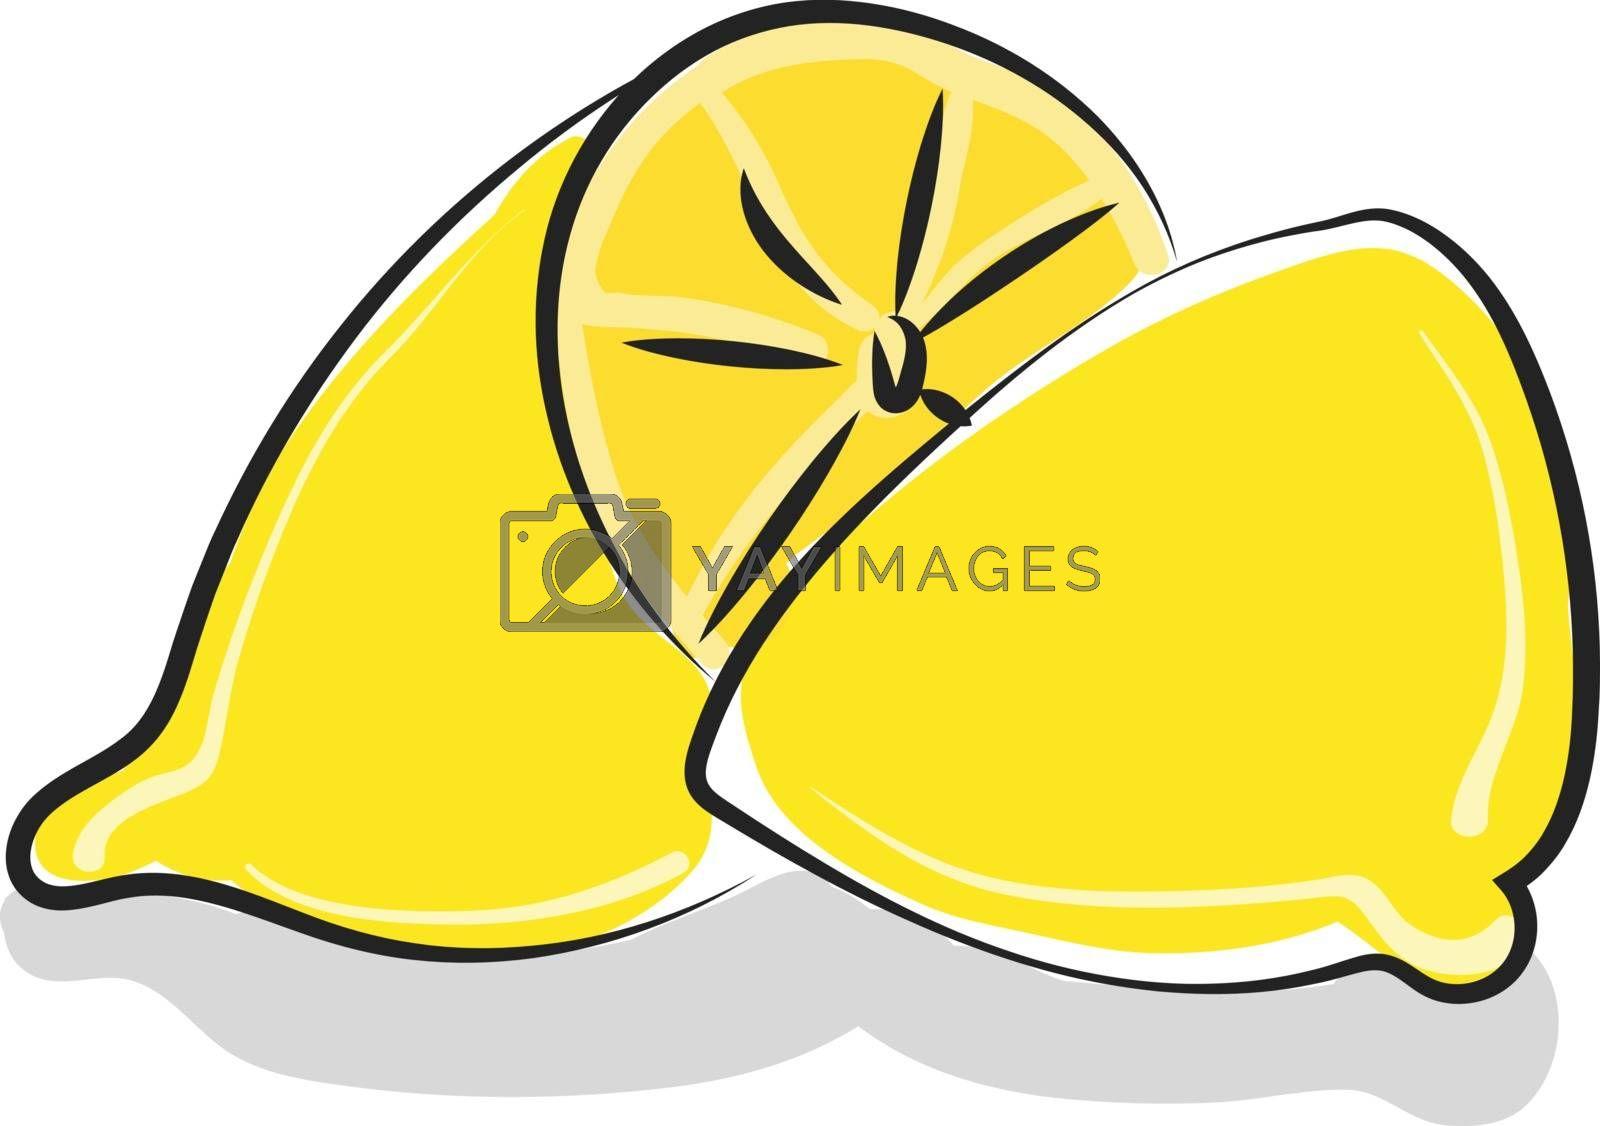 Royalty free image of Clipart of a whole lemon cut into two unequal halves vector or c by Morphart